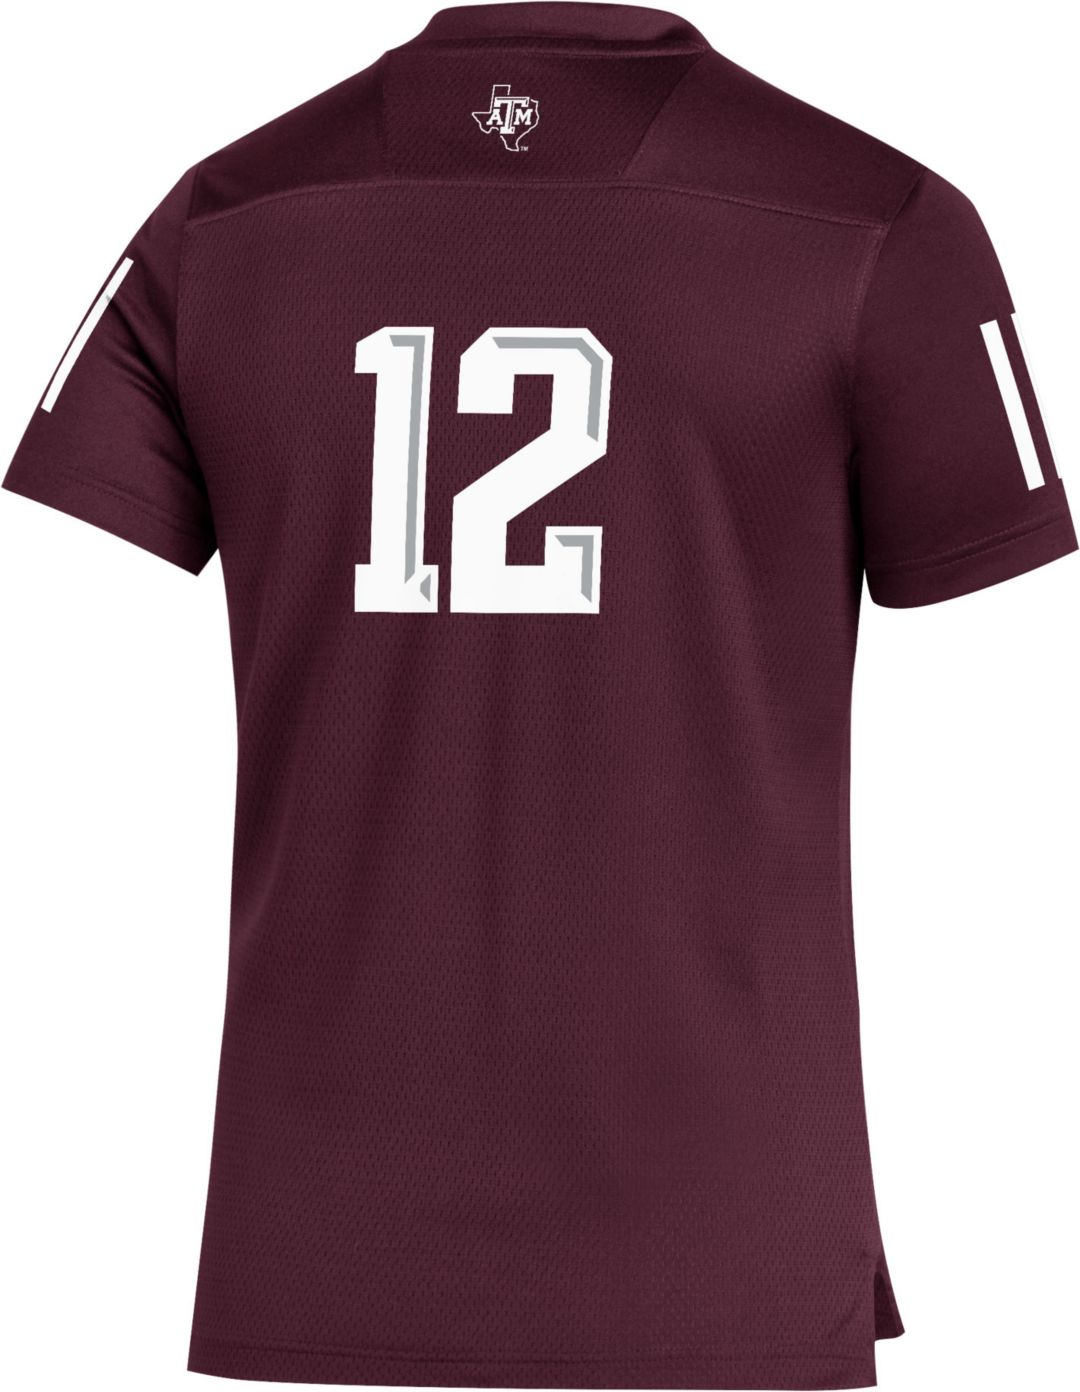 size 40 971be c91de adidas Youth Texas A&M Aggies #12 Maroon Replica Football Jersey